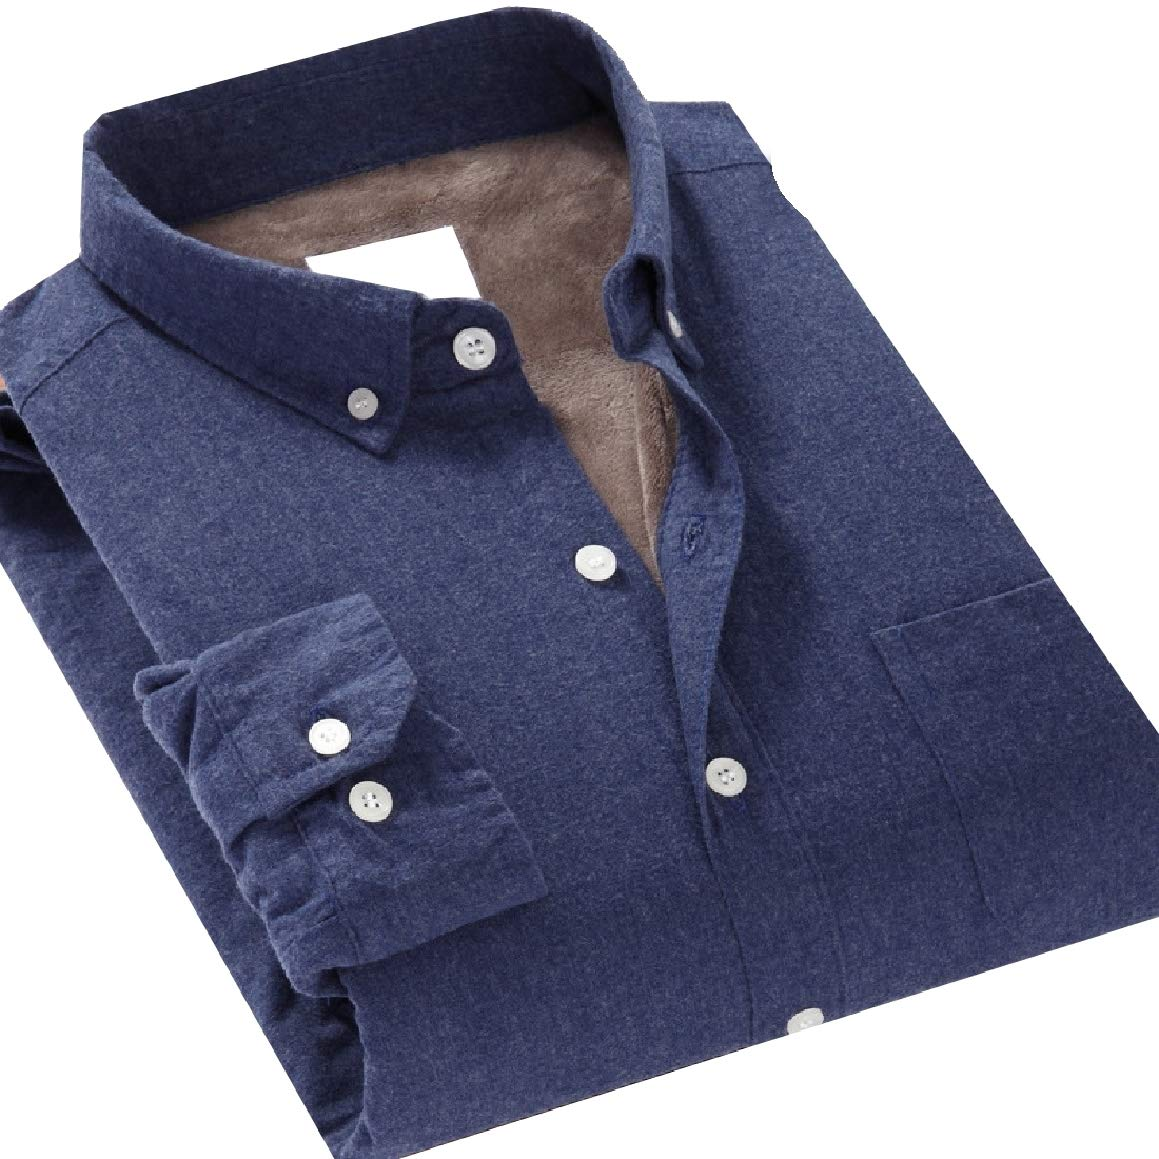 RomantcMen Stretch Thickening Plus Velvet Solid-Colored Business Shirts